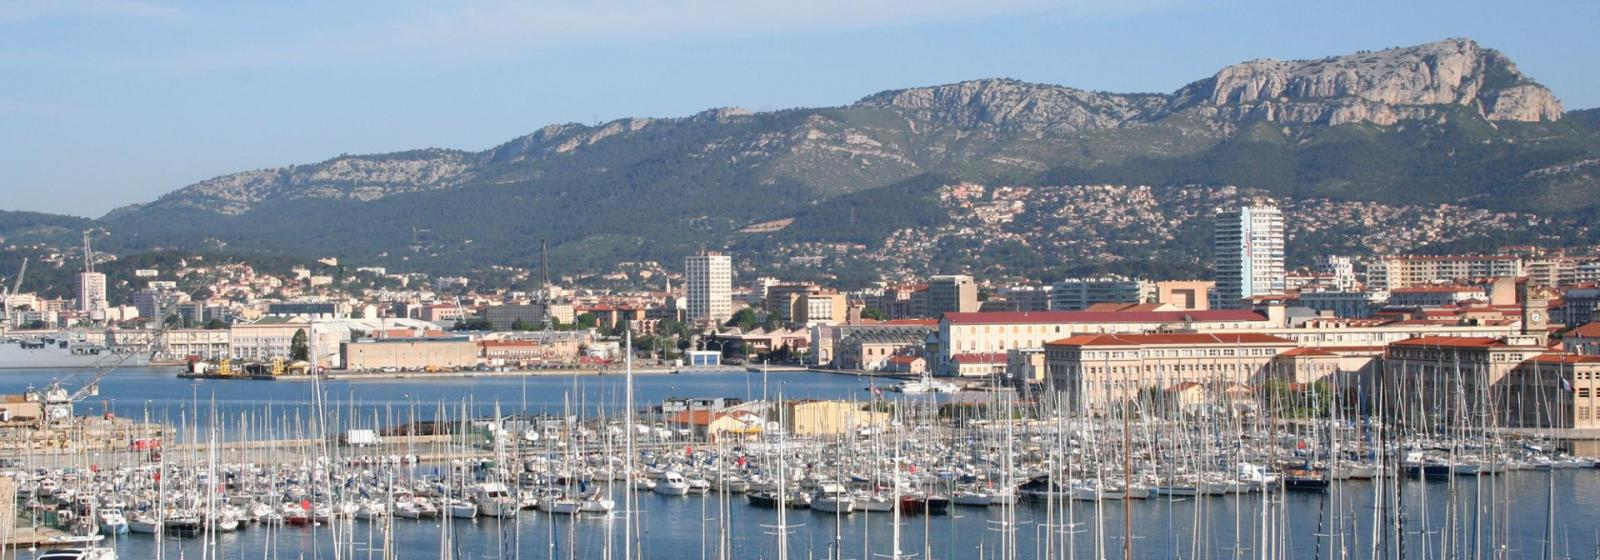 4 star campsite Toulon | Tourism and holiday rental in Toulon